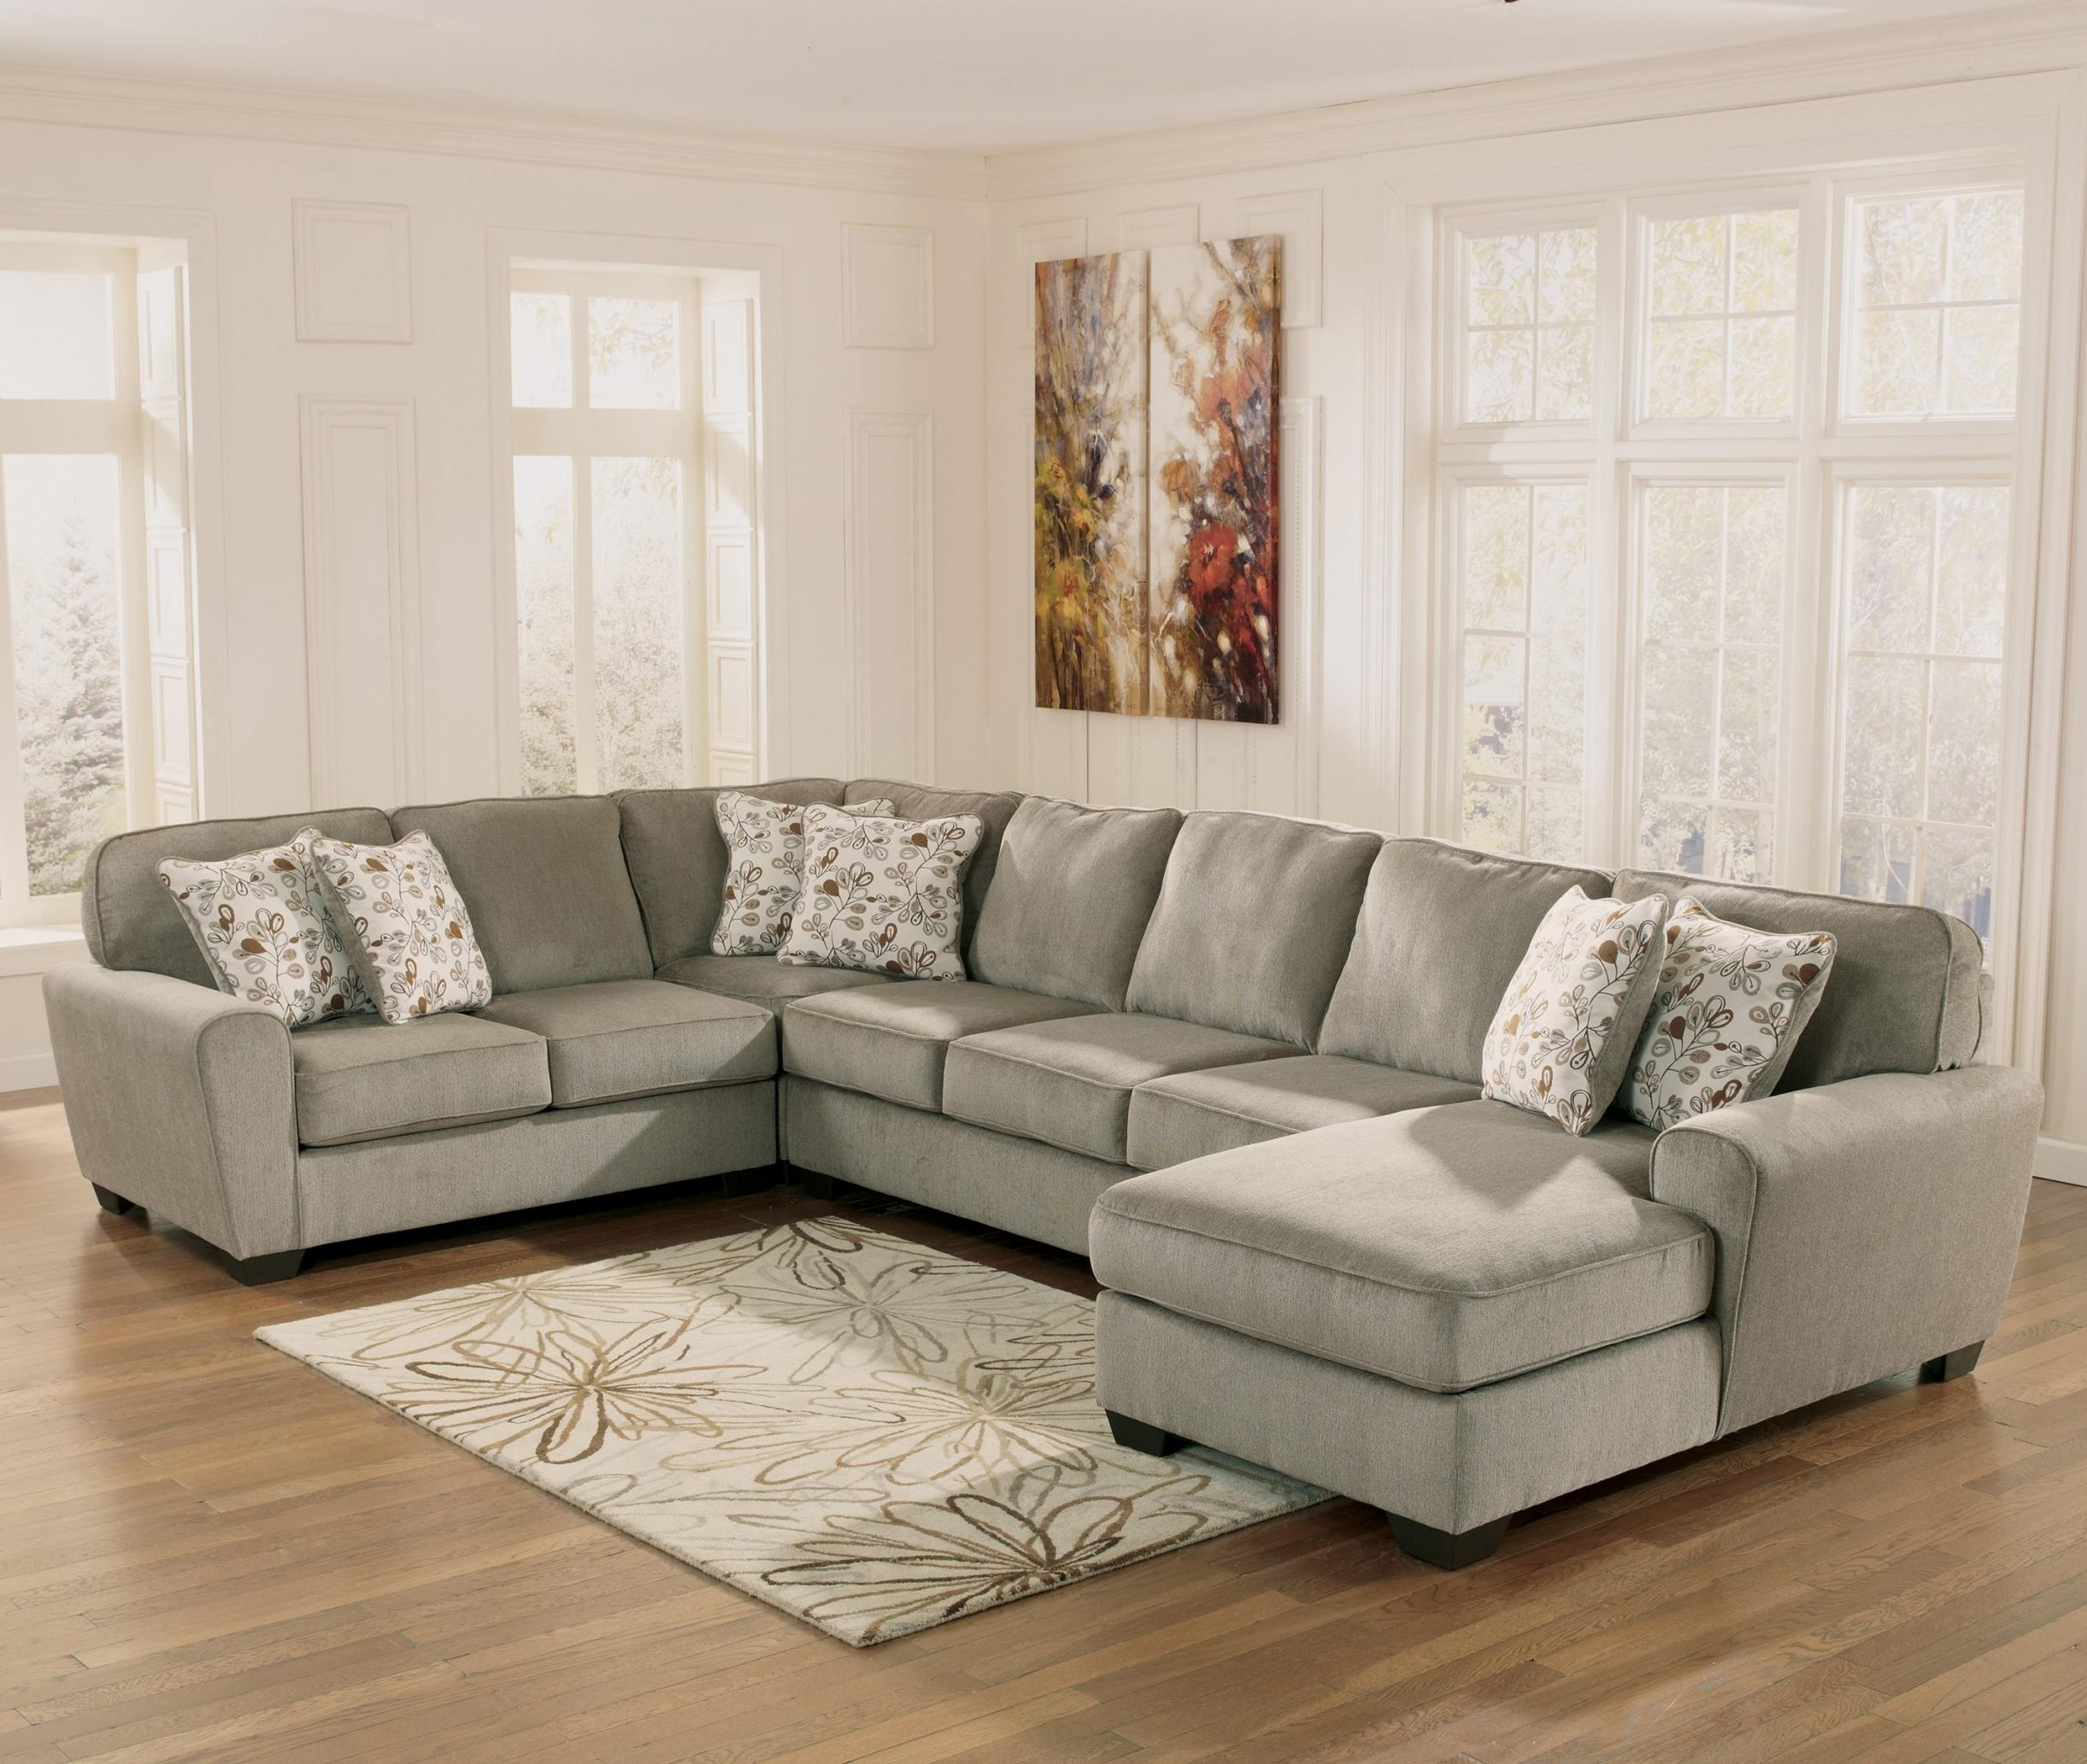 10 Collection Of Hattiesburg Ms Sectional Sofas Sofa Ideas